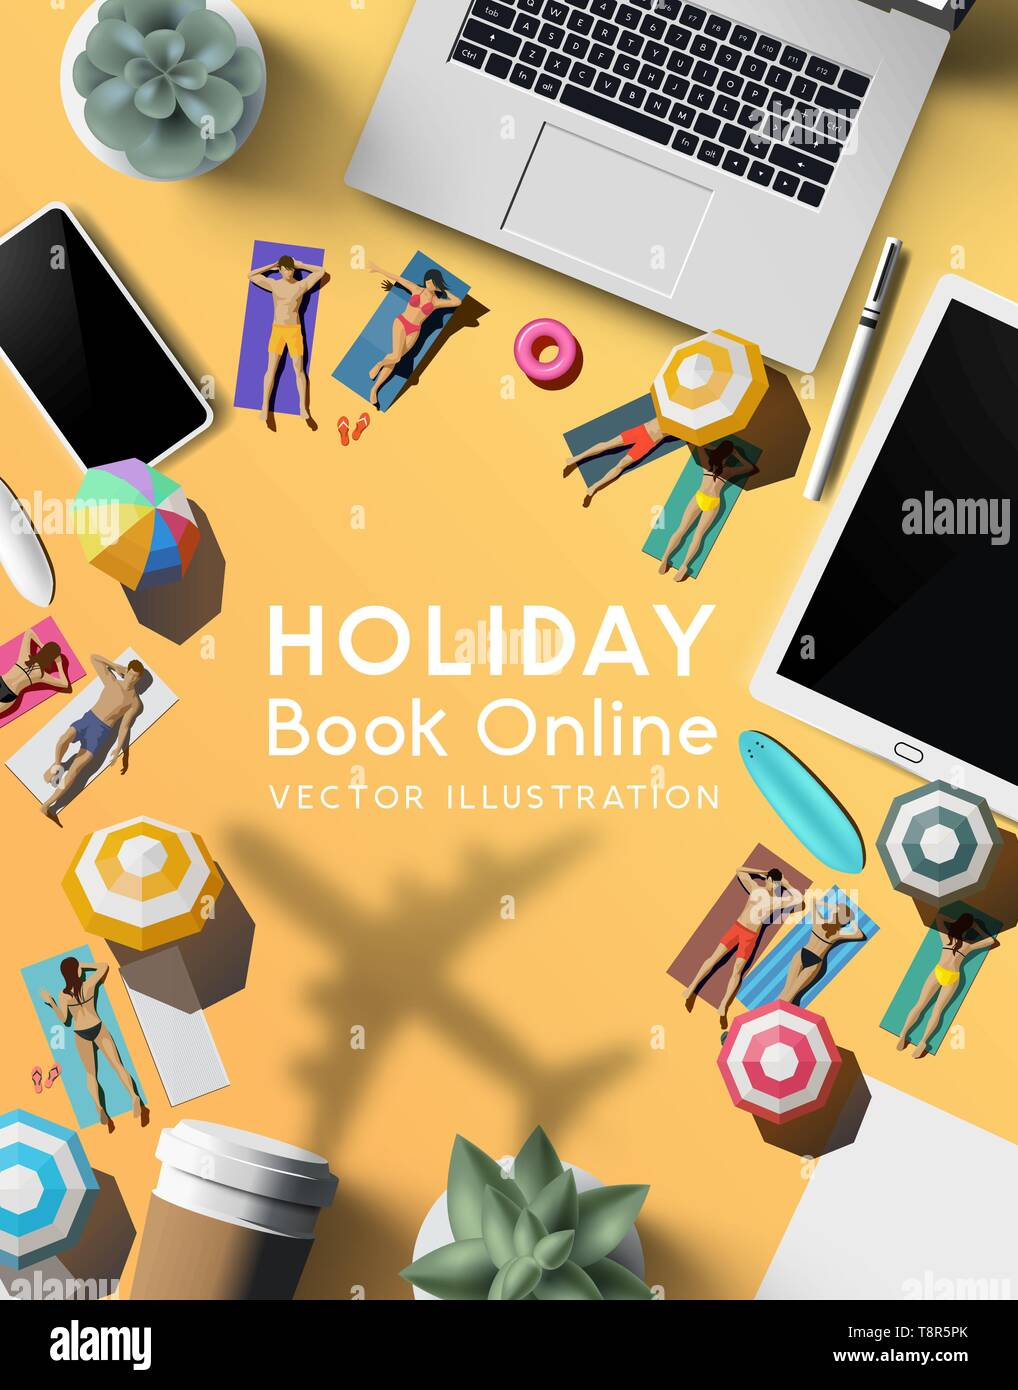 Booking a holiday trip online. travel concept with a notebook, smartphone and tablet on a desk with people relaxing in the sun as a plane flies past. - Stock Vector